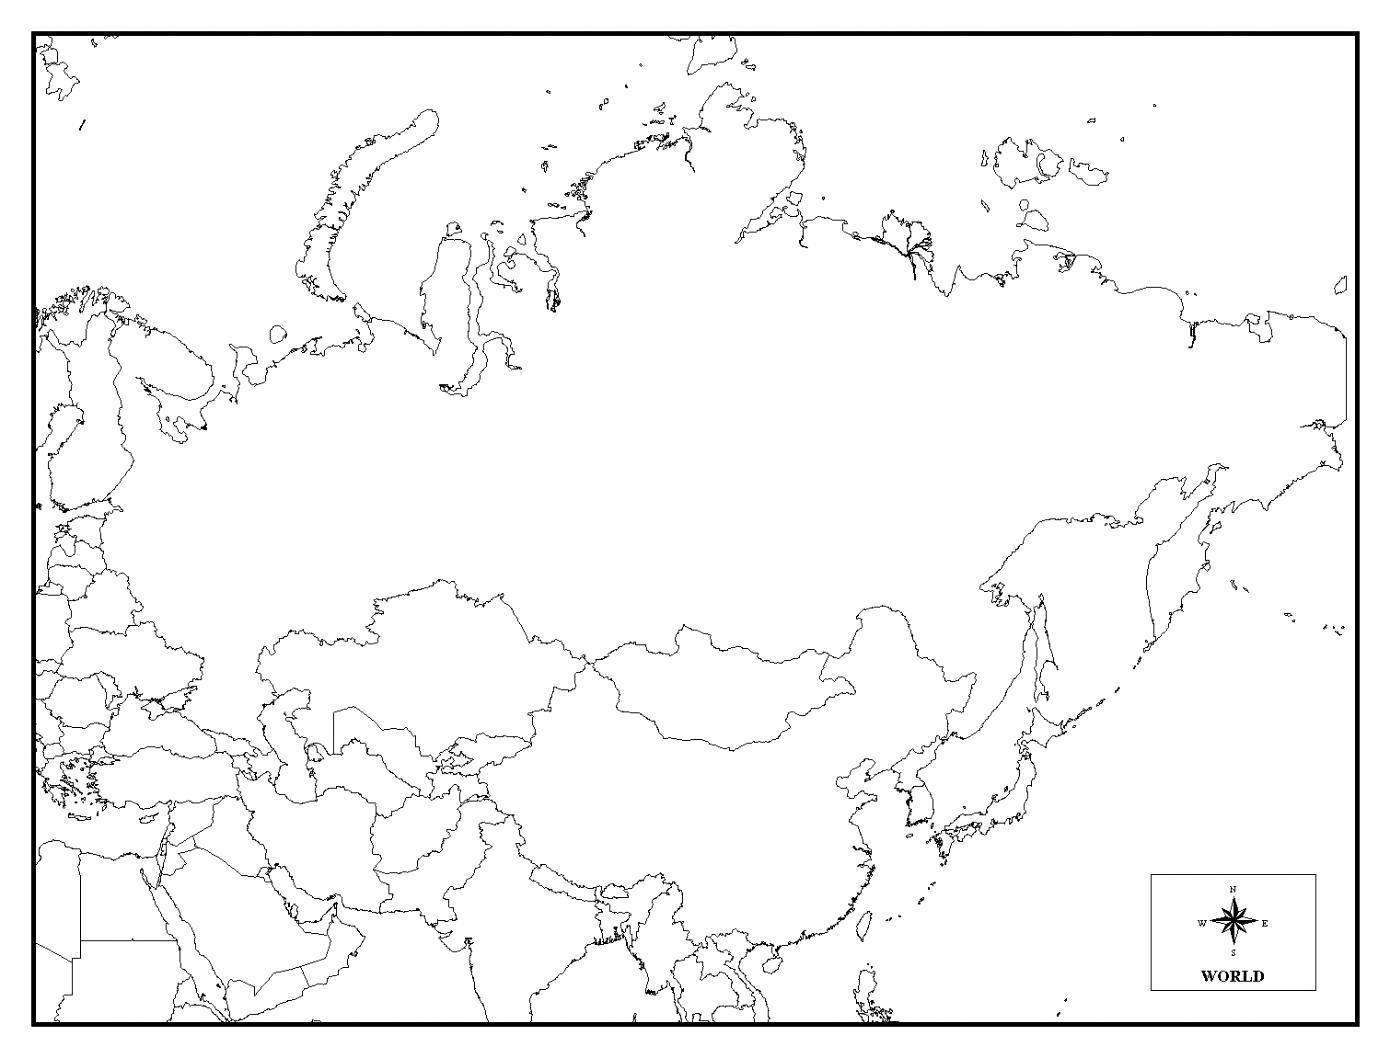 Projection Map Blank Printable World Outline Maps Royalty Free